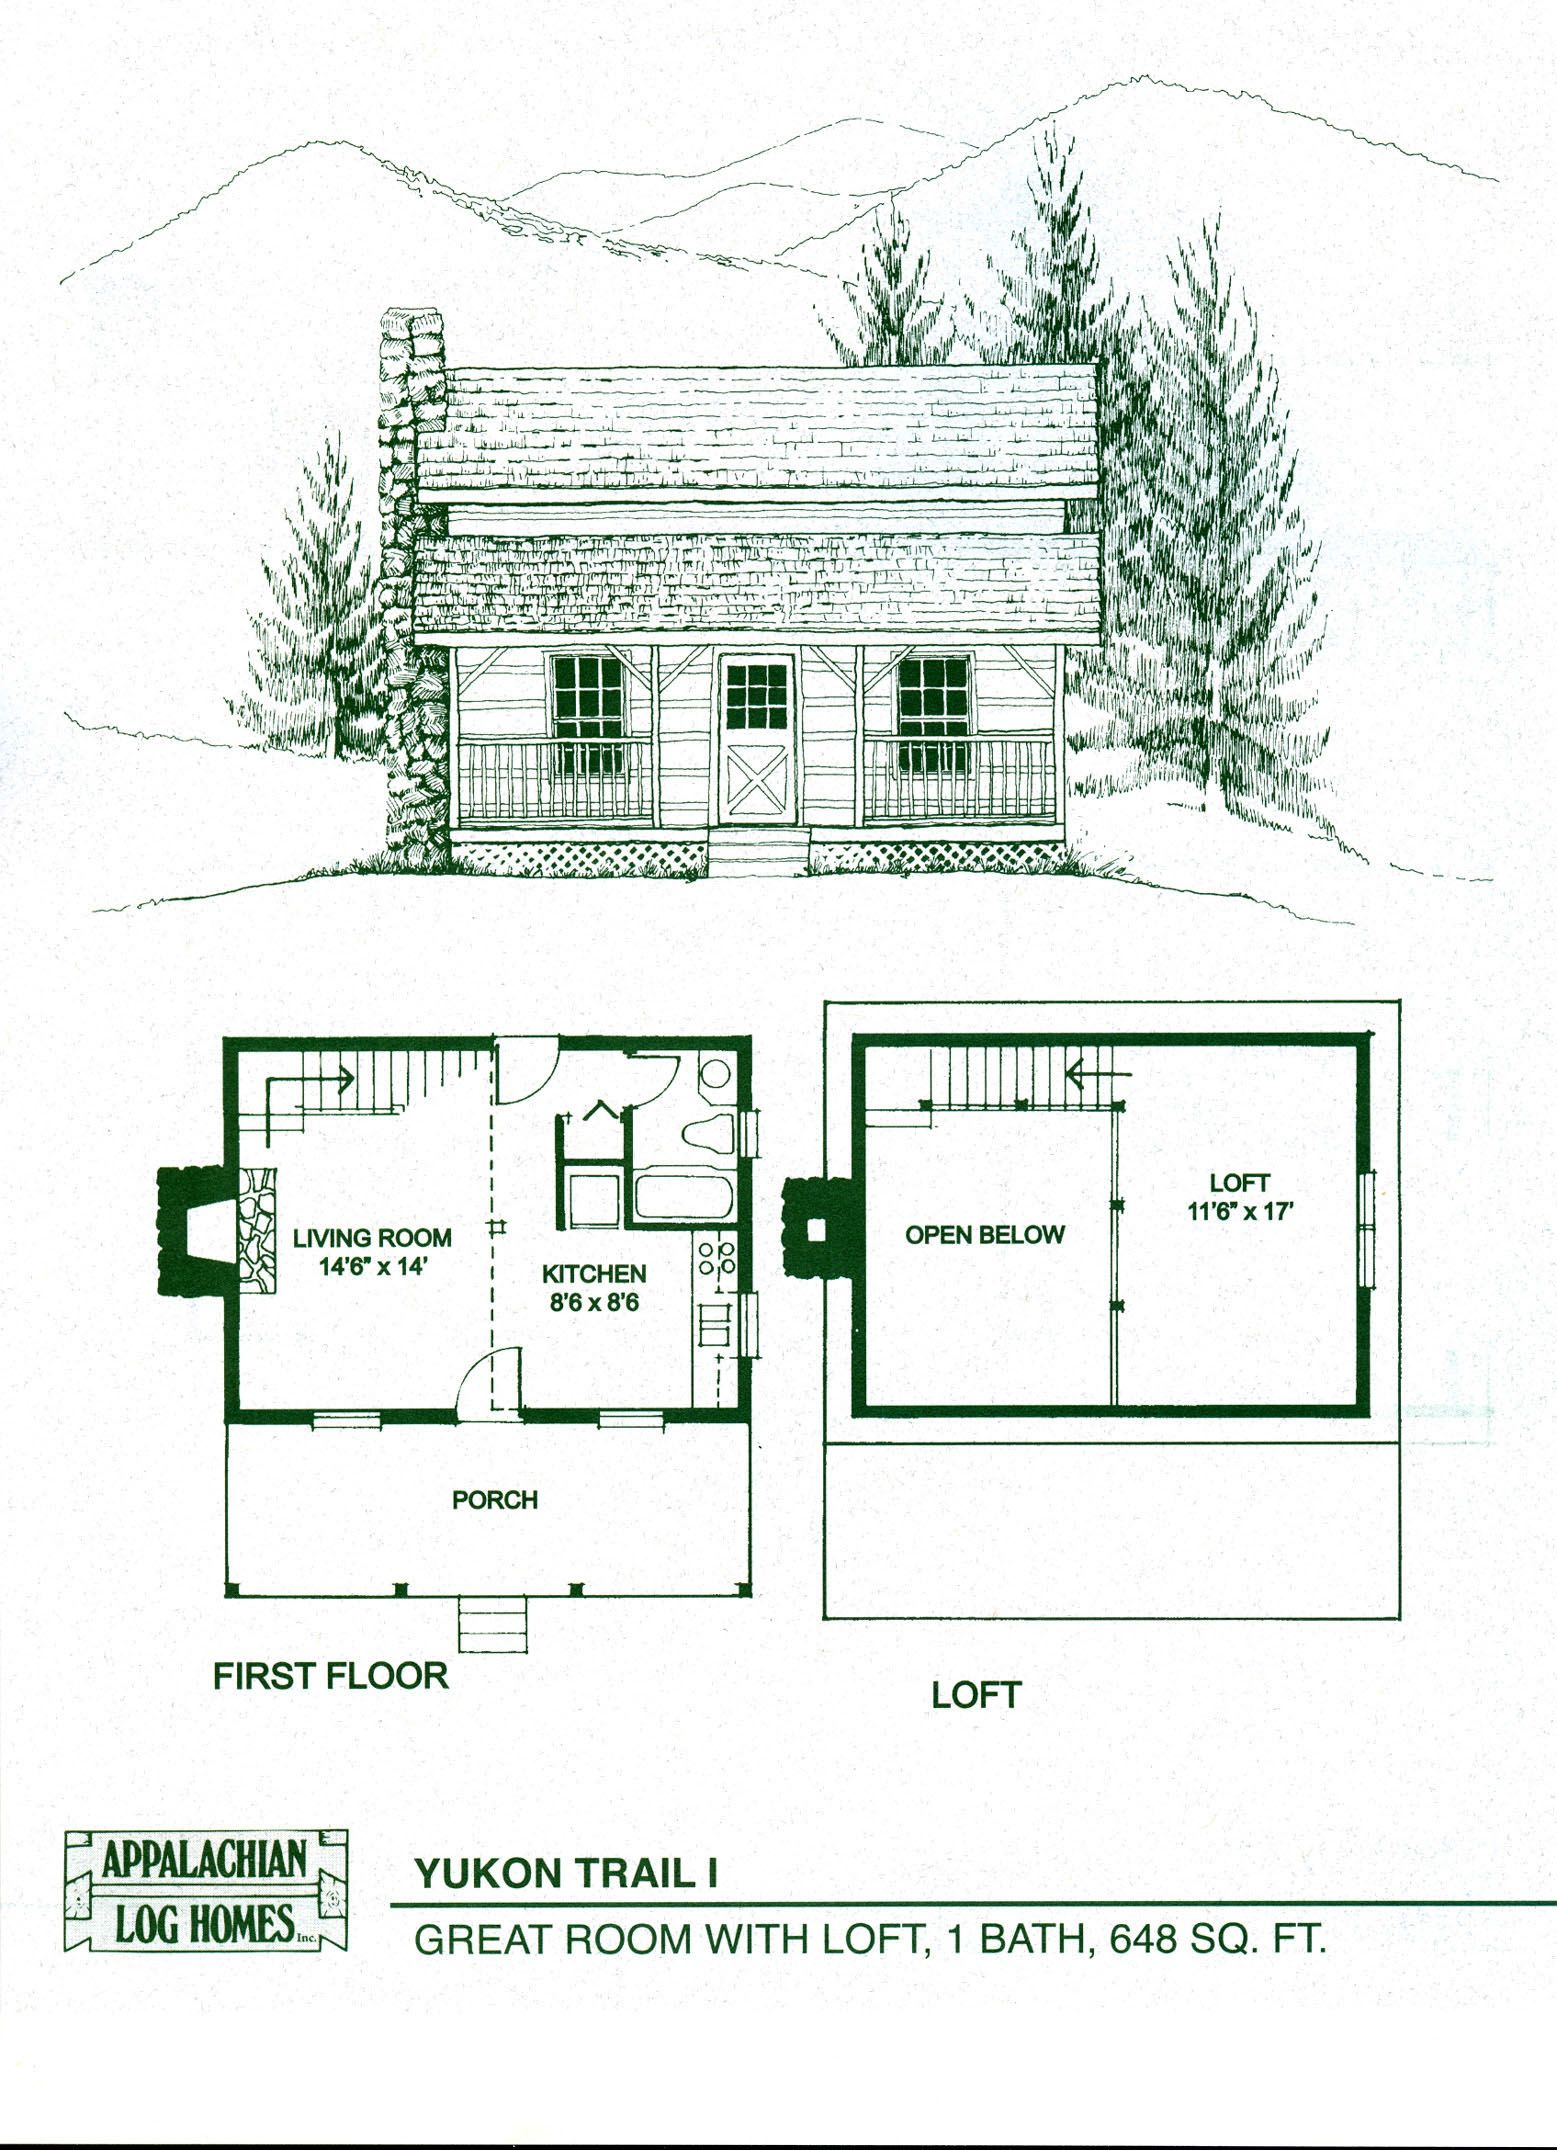 Log home floor plans log cabin kits appalachian log for Cabin home designs